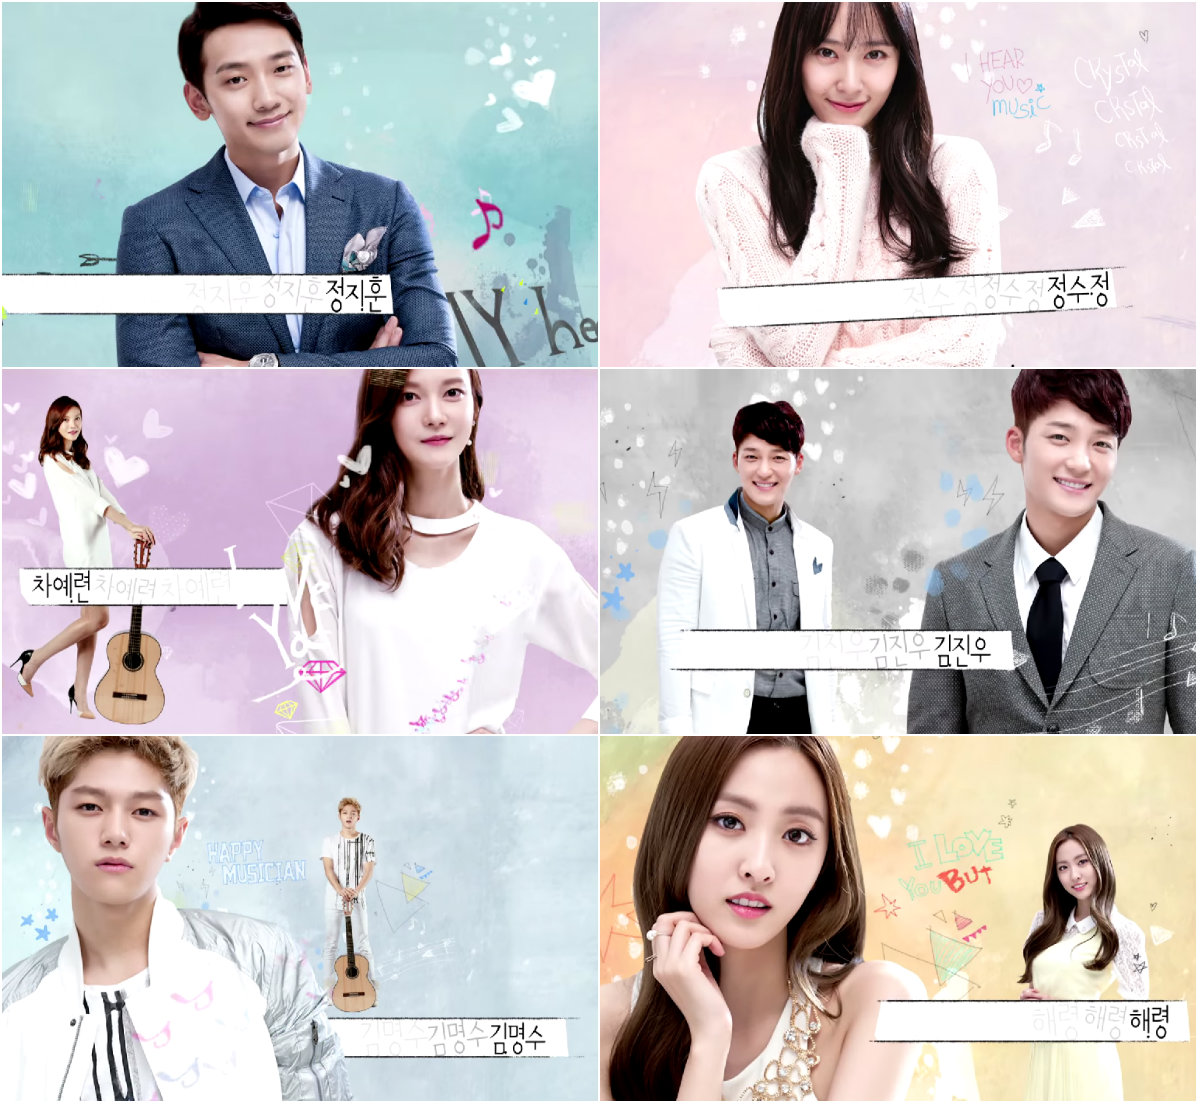 922 my lovely girl characters